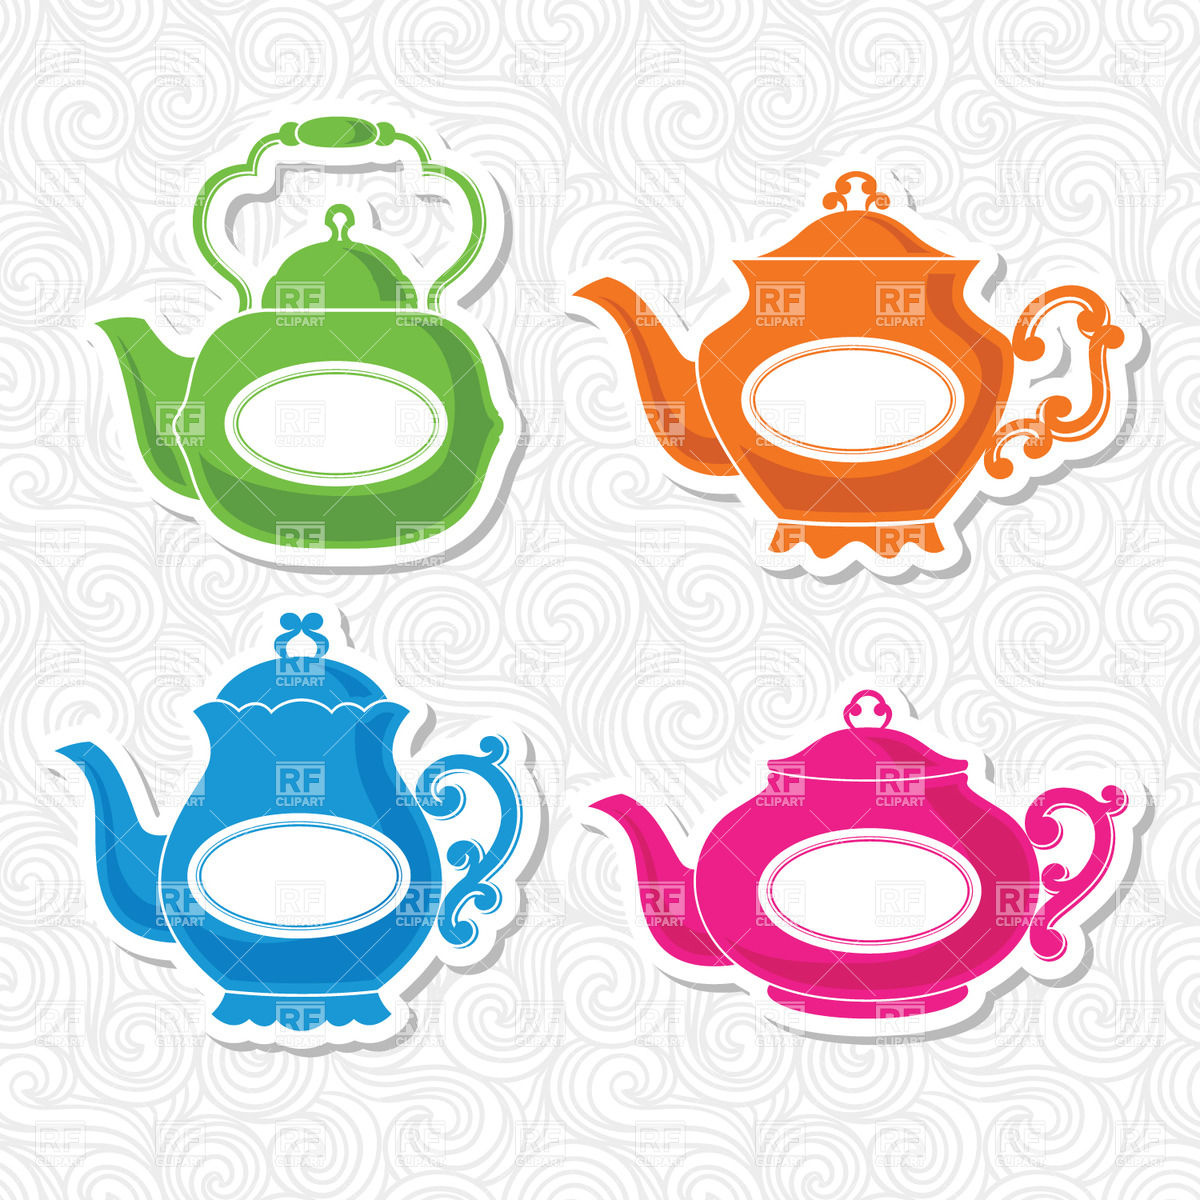 1200x1200 Stickers With Kettle (Teapot) On Ornate Background Vector Image